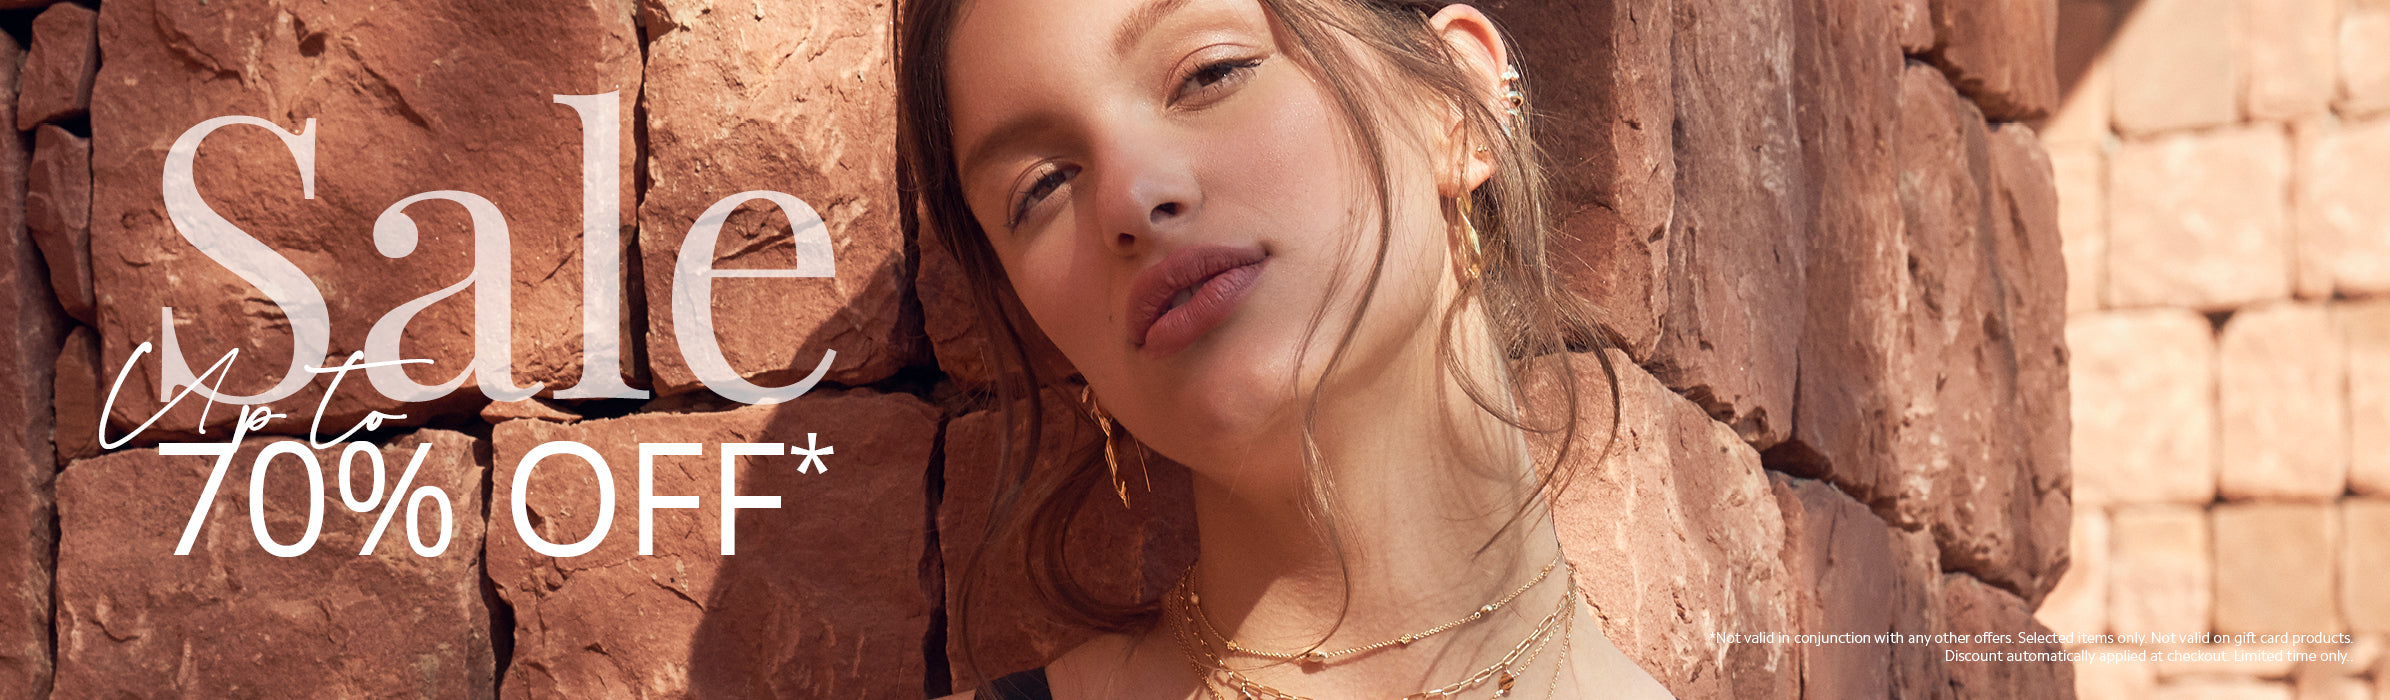 Up to 70% OFF Sale Jewellery by Ania Haie